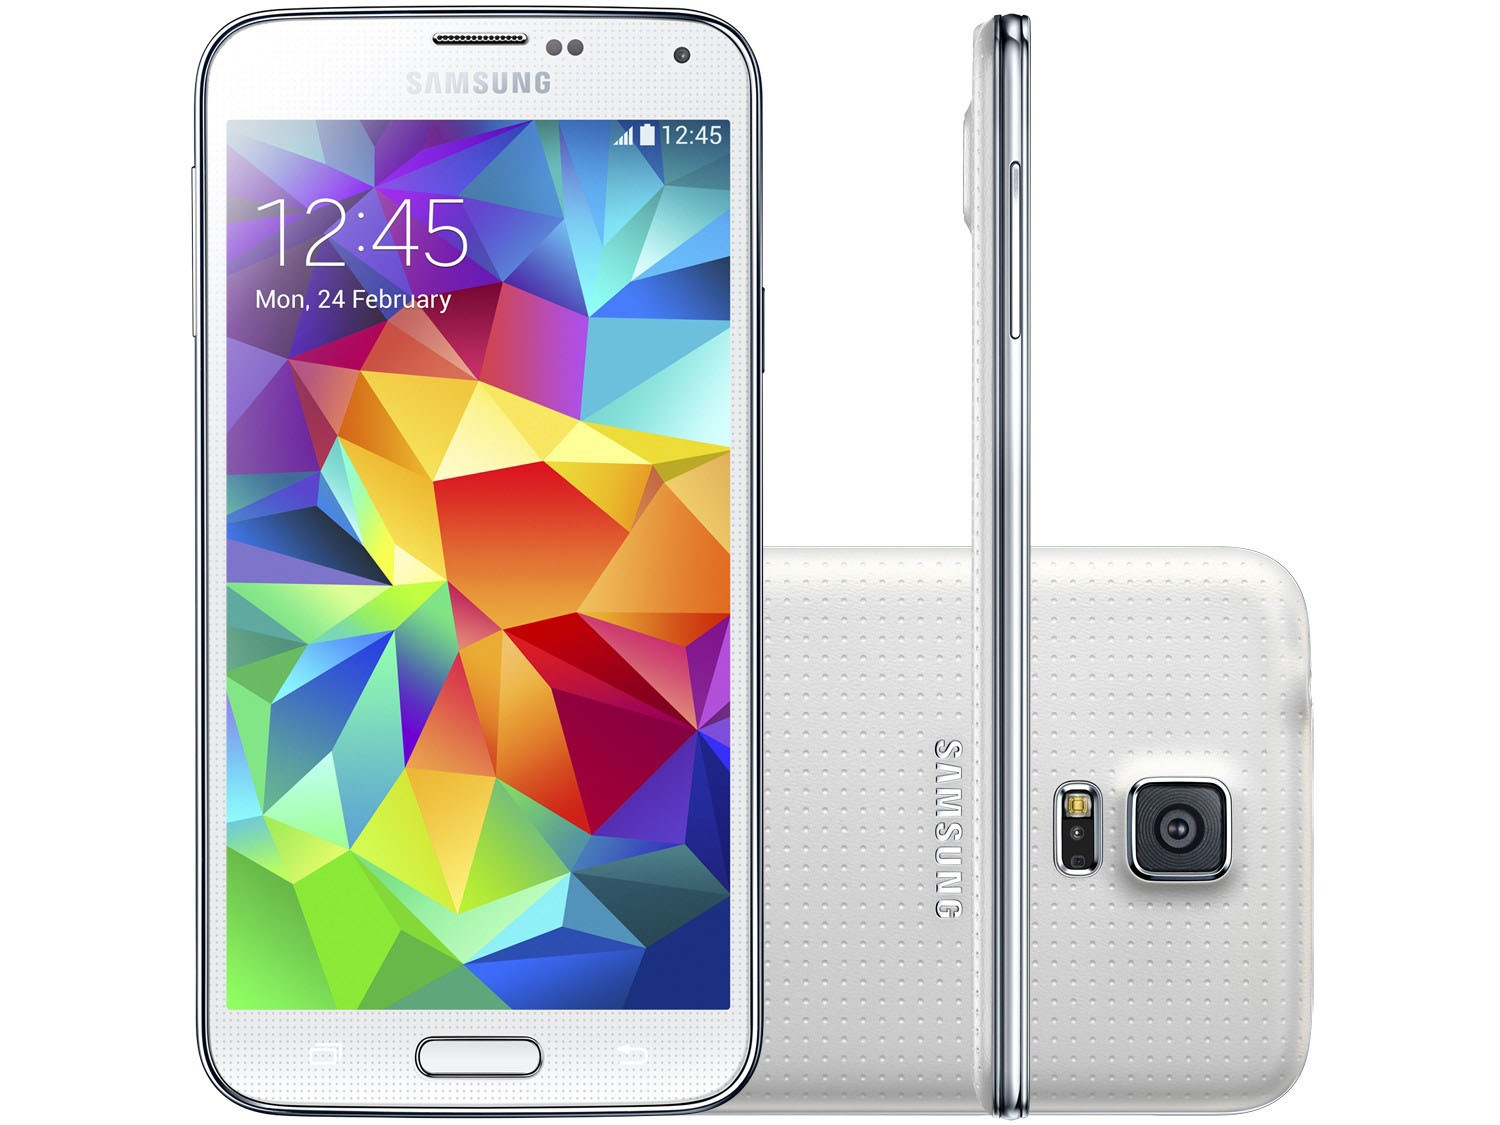 Galaxy S5 ficará totalmente inutilizável com recurso anti-furto